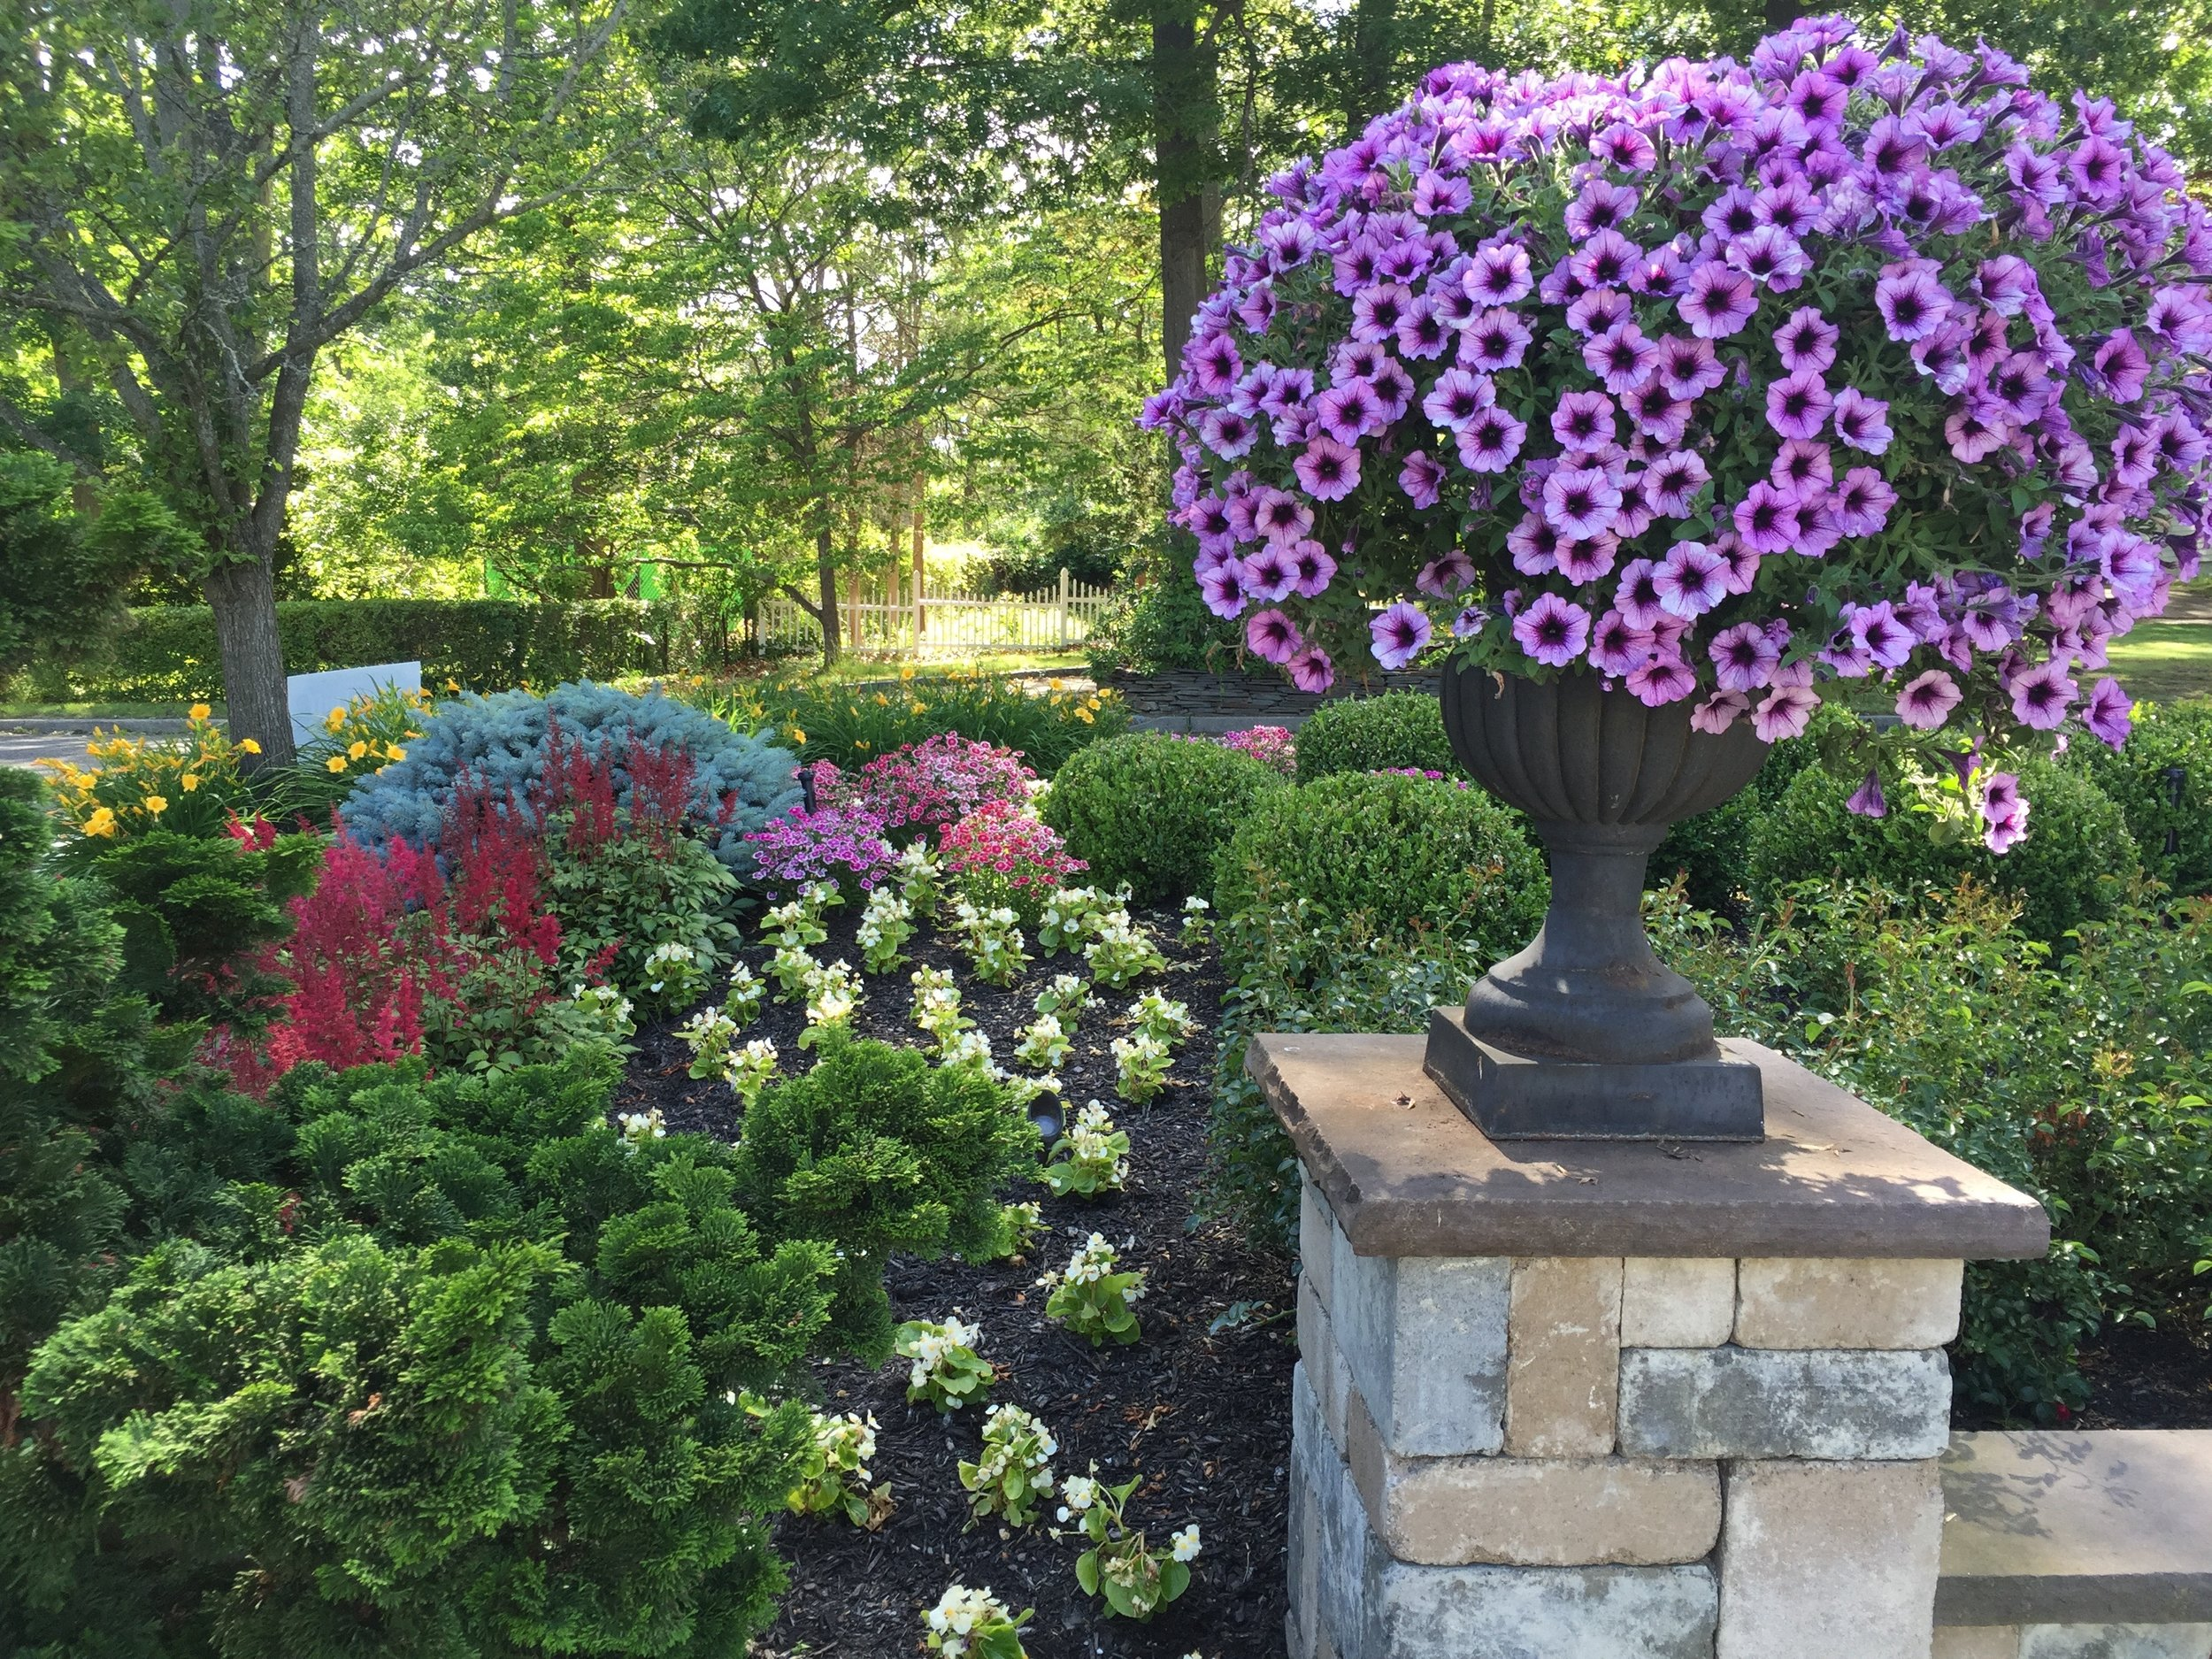 Experienced landscape flower design company in Long Island, NY